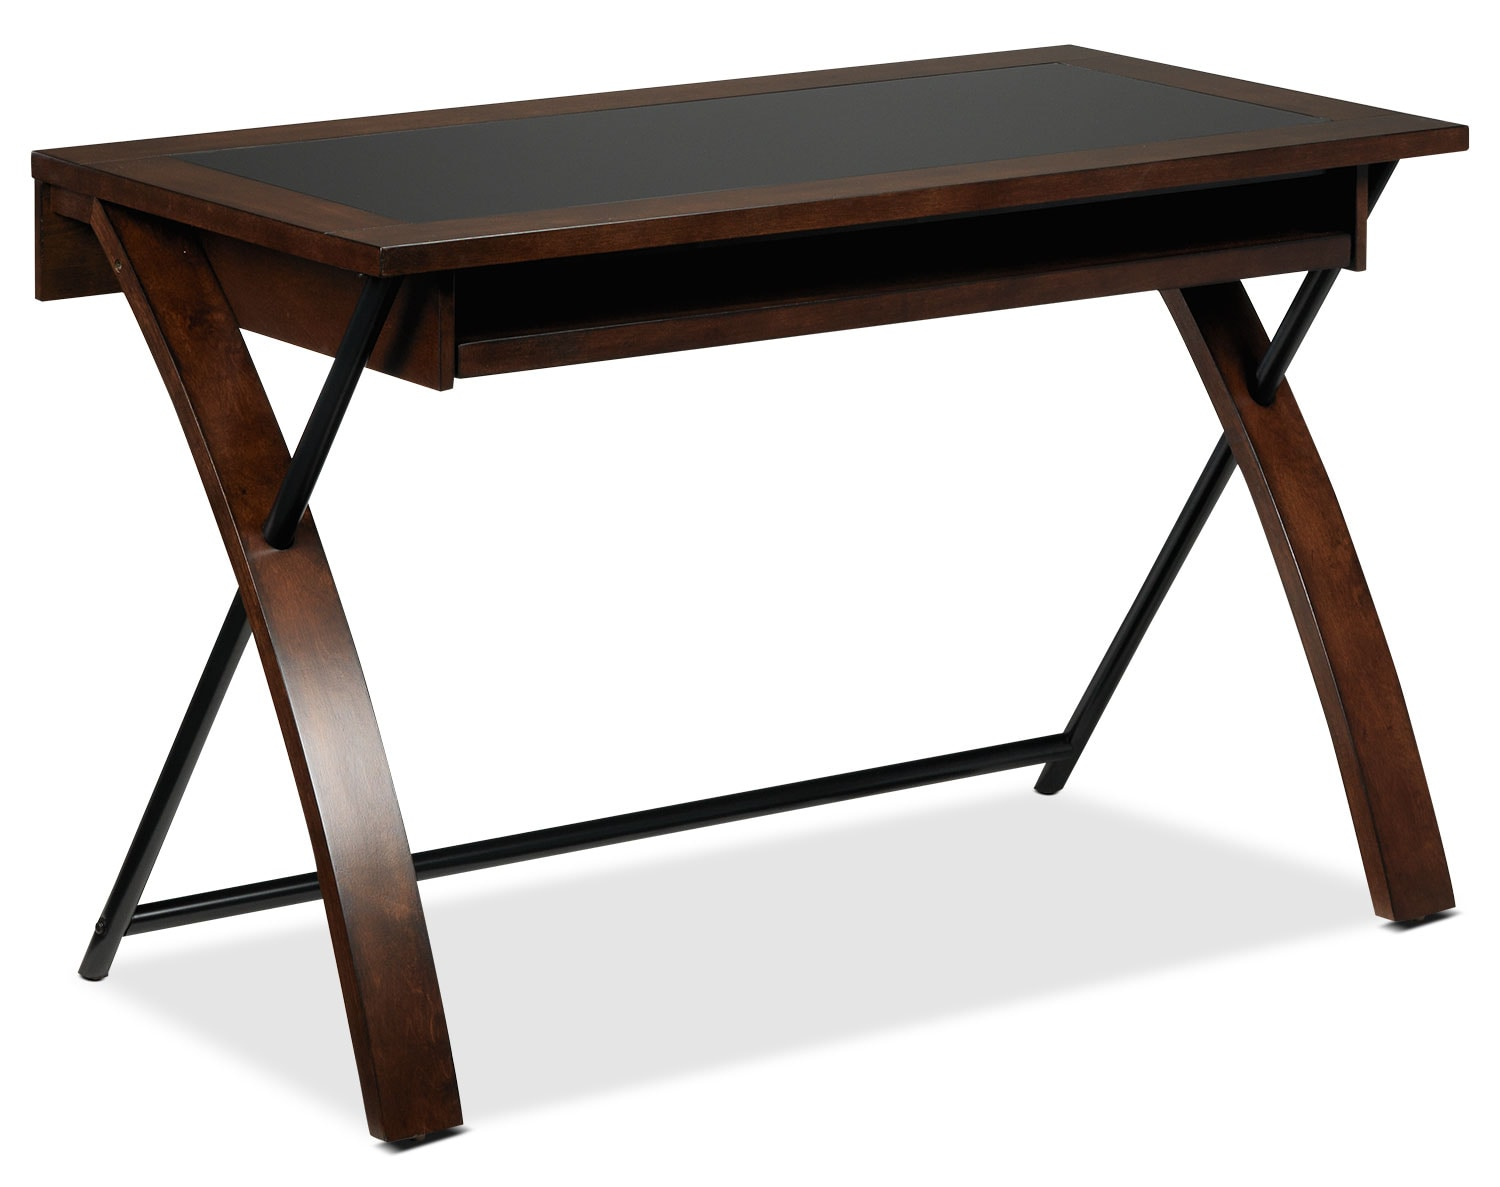 Home Office Furniture - Zeta Computer Desk - Black and Brown Cherry